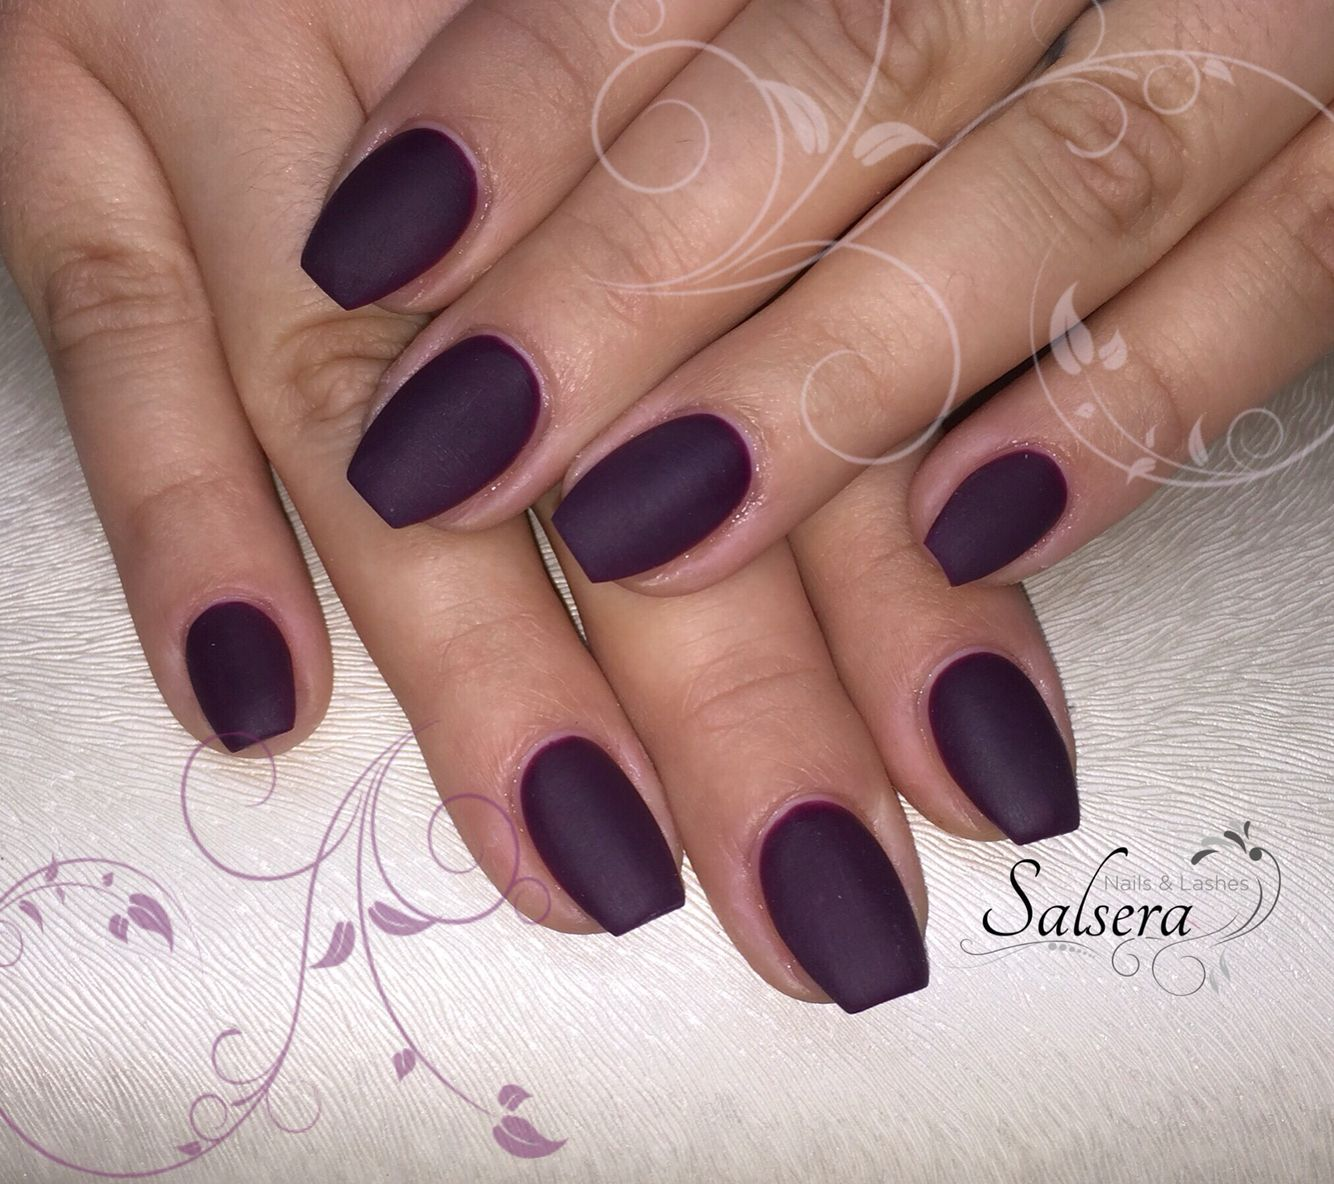 Nageldesign Ballerina Nails Nägel Ballerina Matt Plum Lila Bordeaux Fullcover